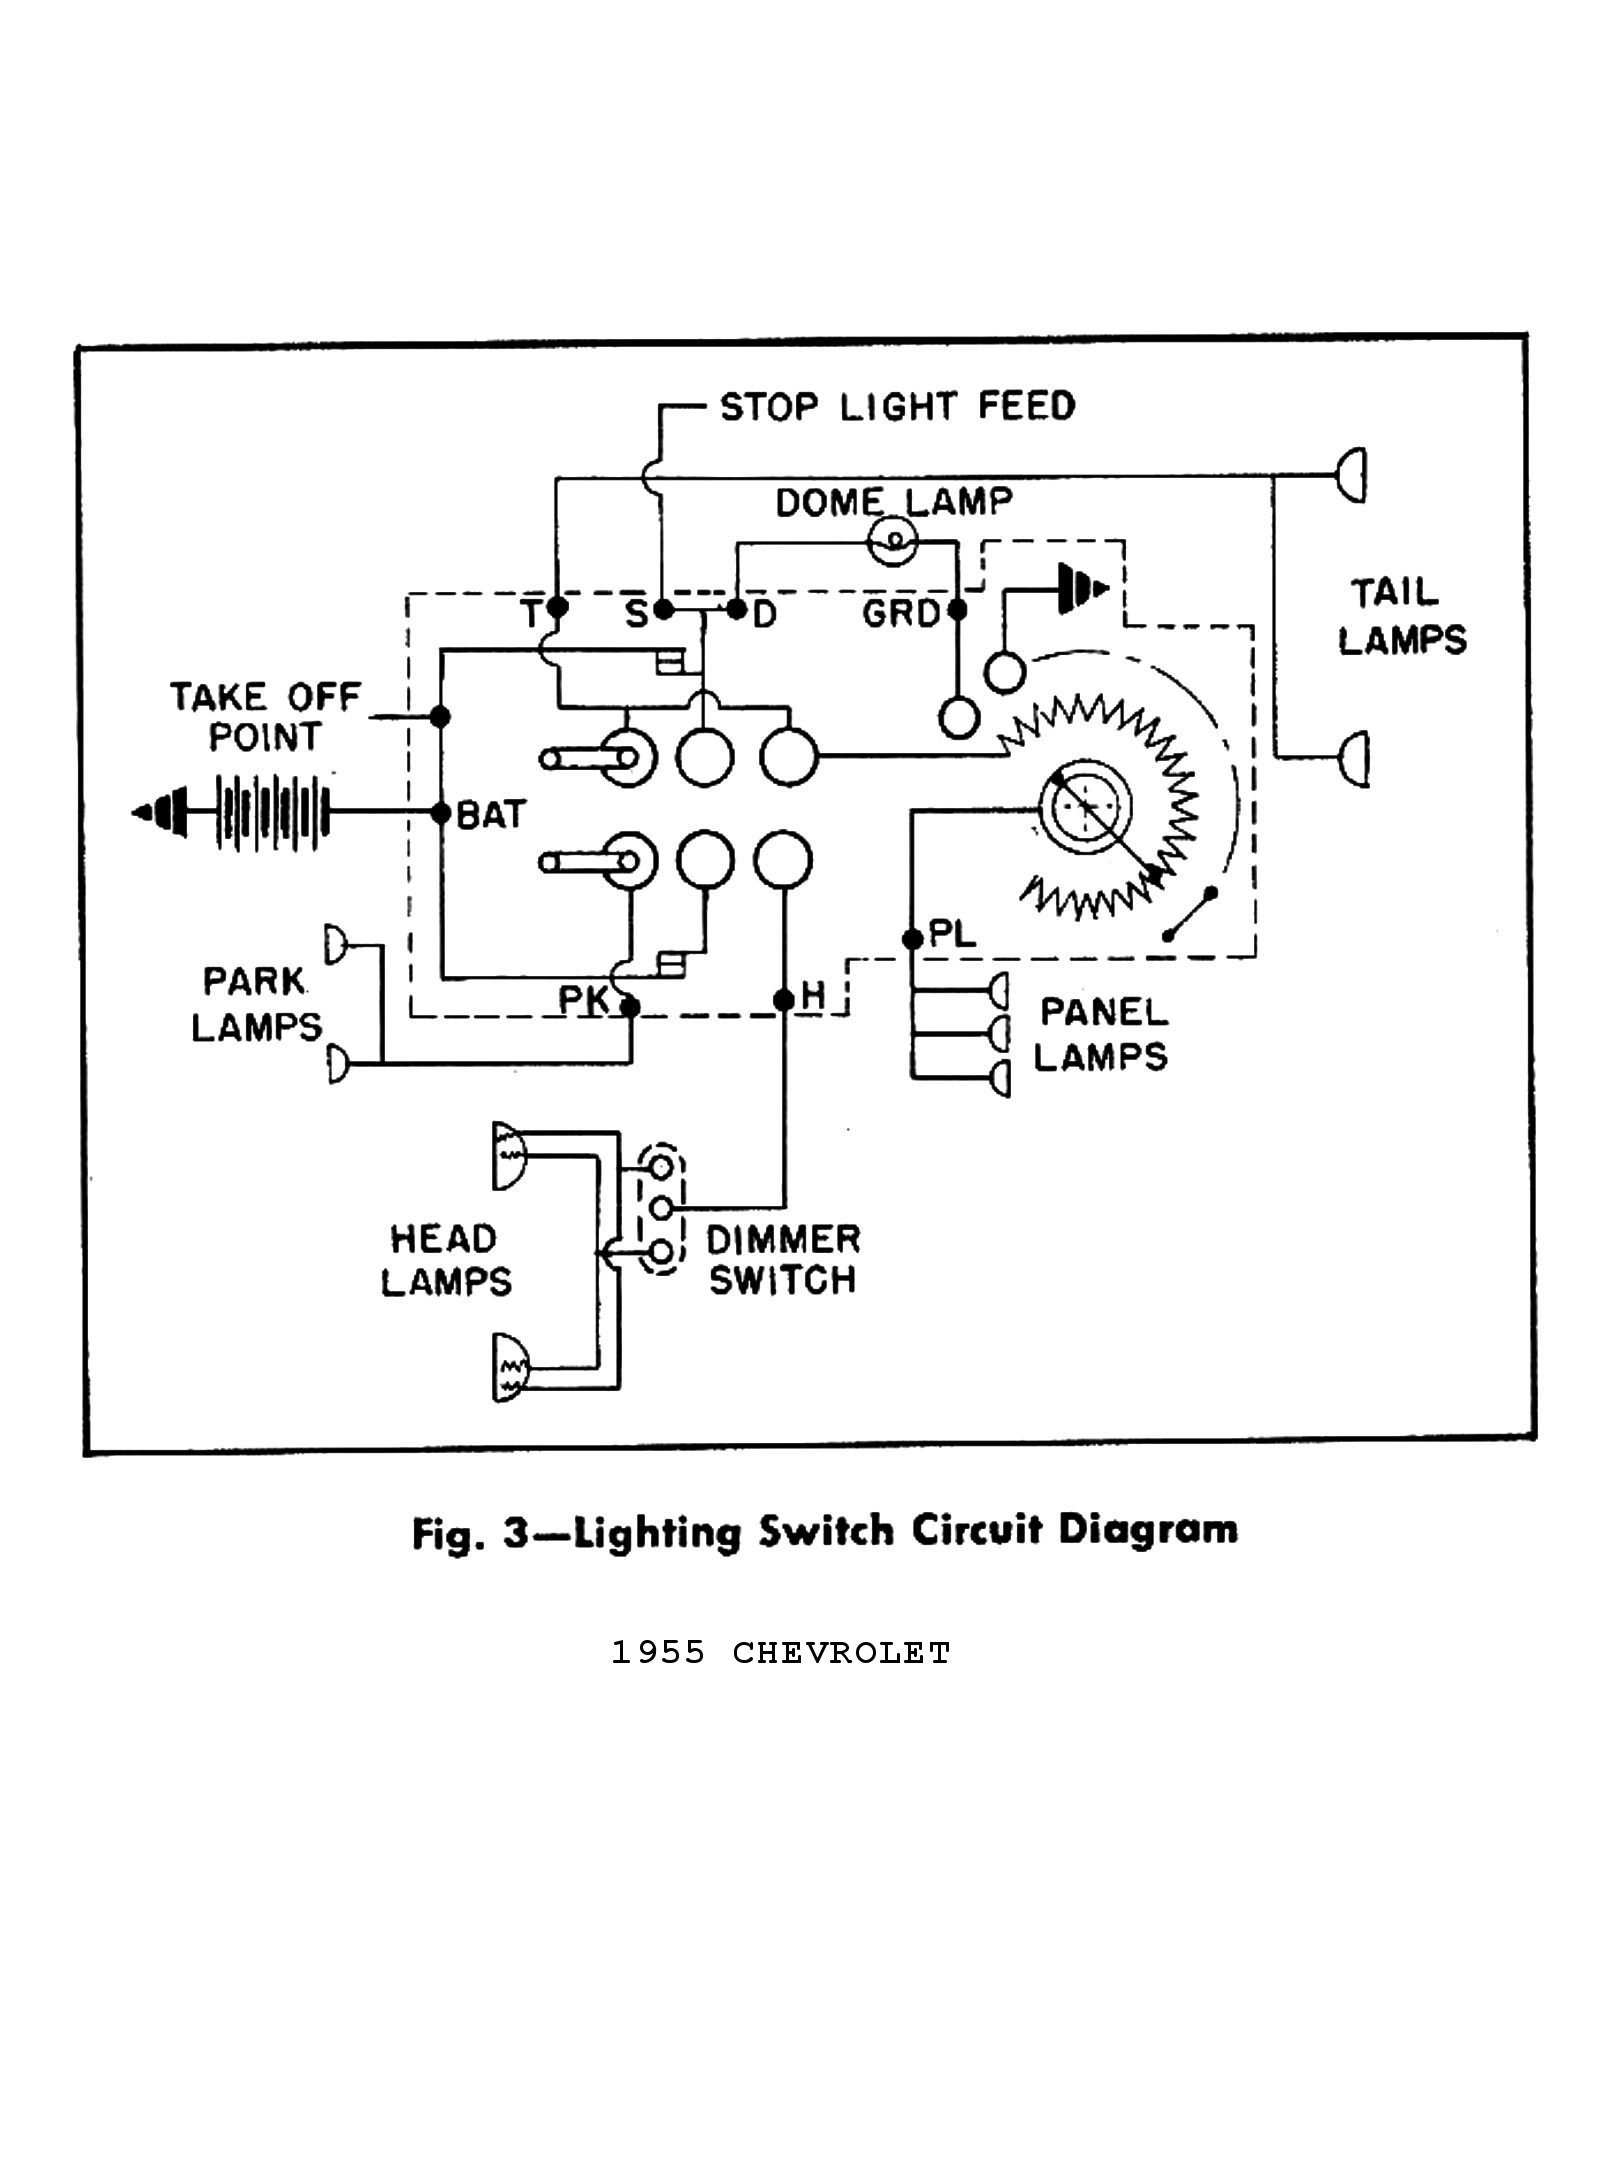 55ctsm1203 chevy wiring diagrams 1955 chevy wiring diagram at gsmportal.co